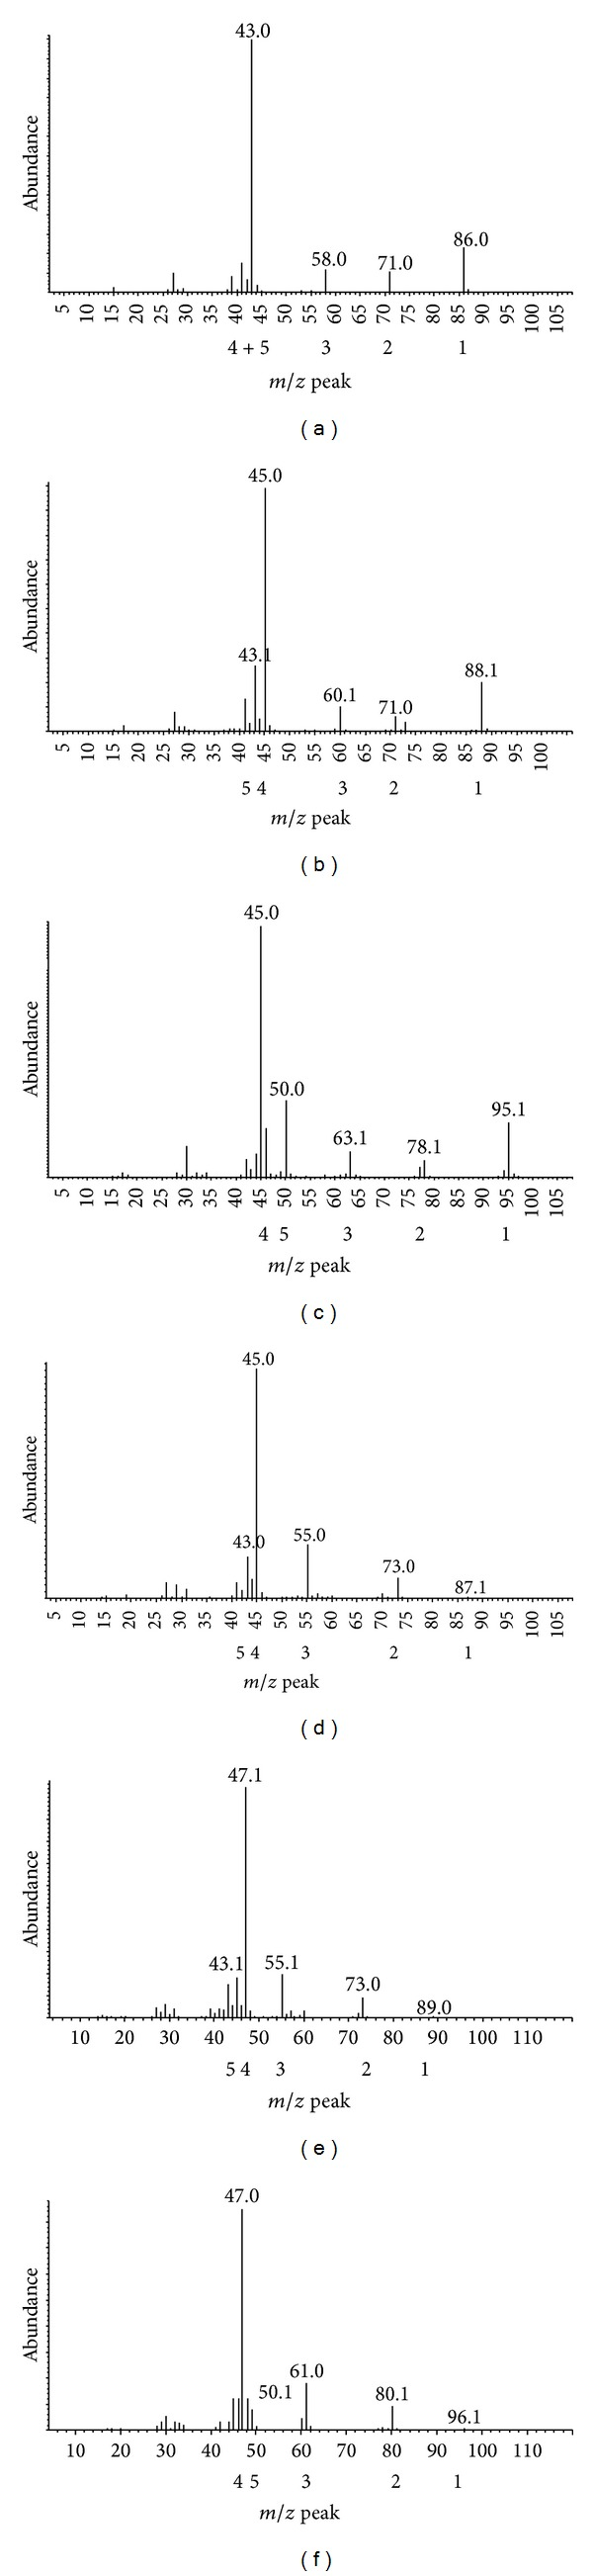 Ion fragments of the 2-pentanone peaks (a). (b), (c) and 2-pentanol peaks (d), (e), (f) peaks shown in Figure 3 ; (a) and (d) from 1 H-hexanoic acid; (b) and (e) from hexanoic-2, 2-D 2 acid; (c) and (f) from hexanoic-D 11 acid.